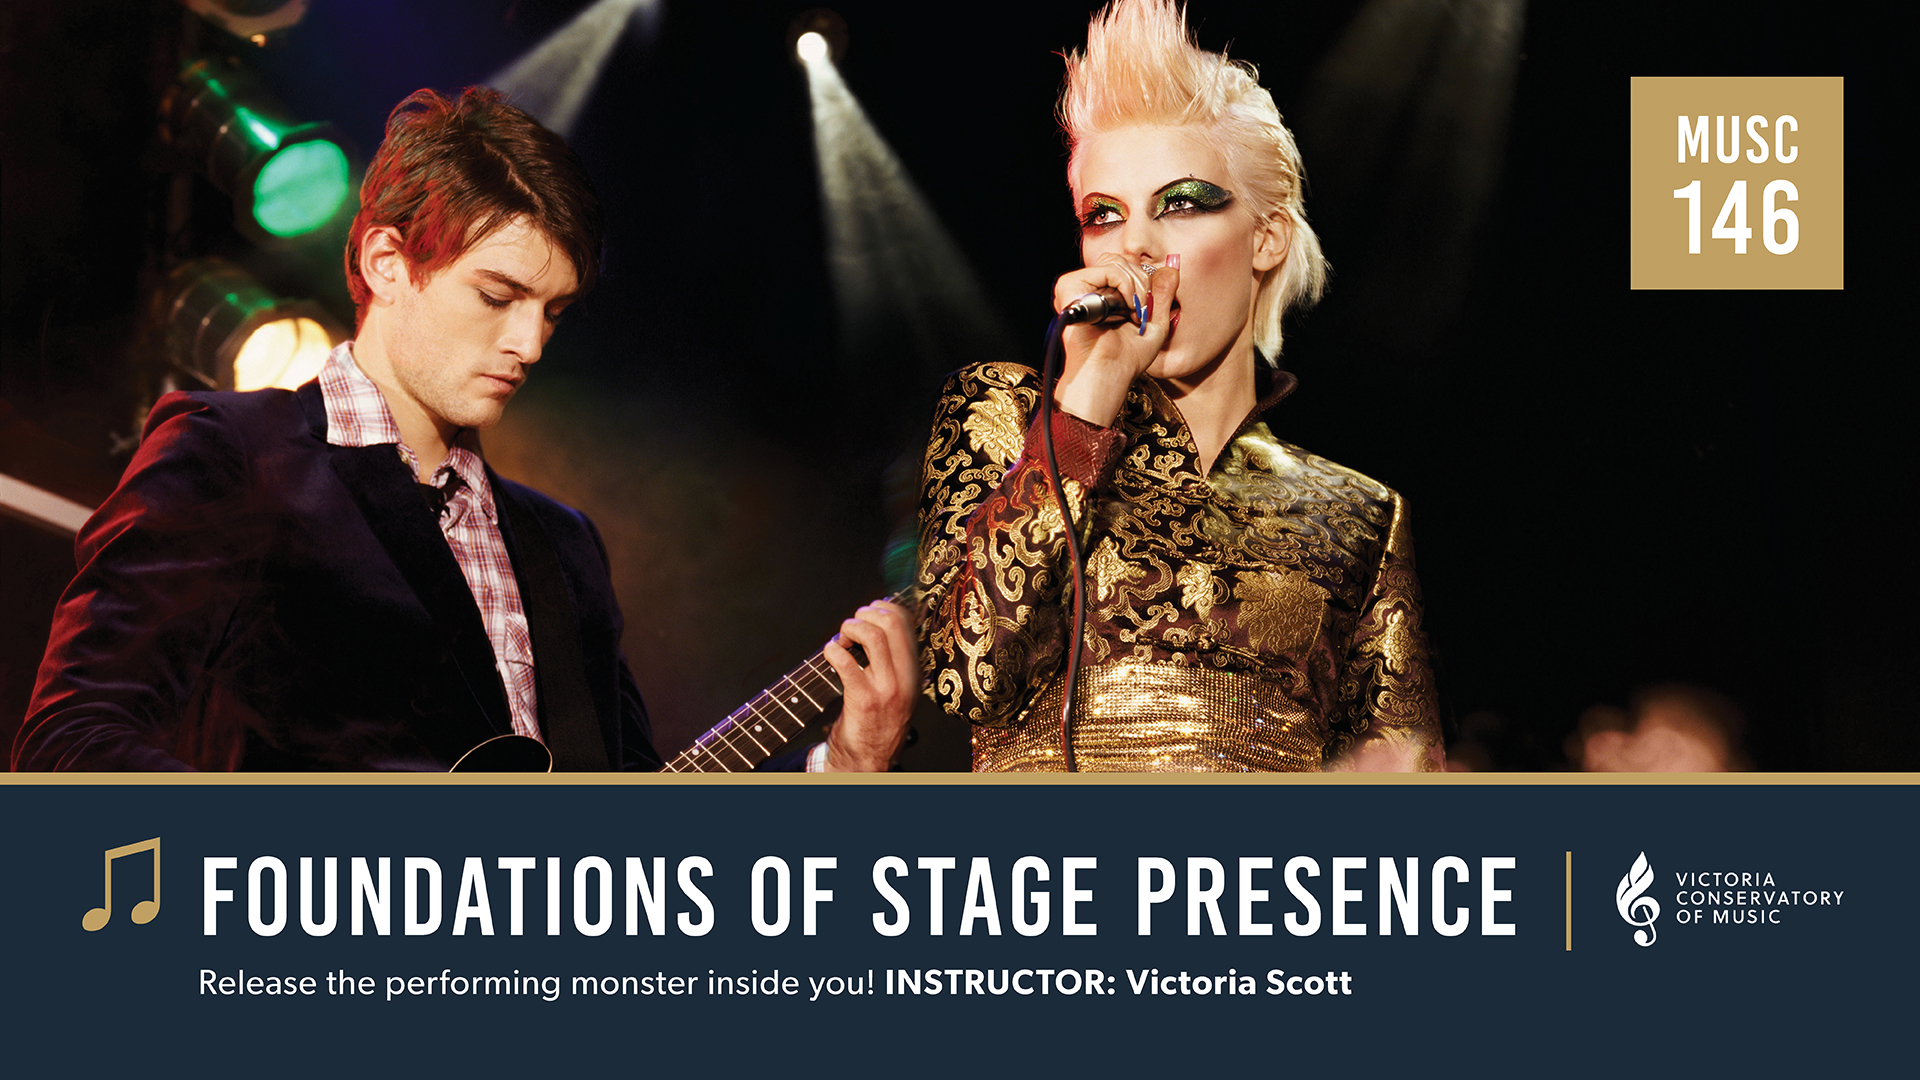 Music-146 Foundations of Stage Presence; Release the performing monster inside of you! Instructor: Victoria Scott